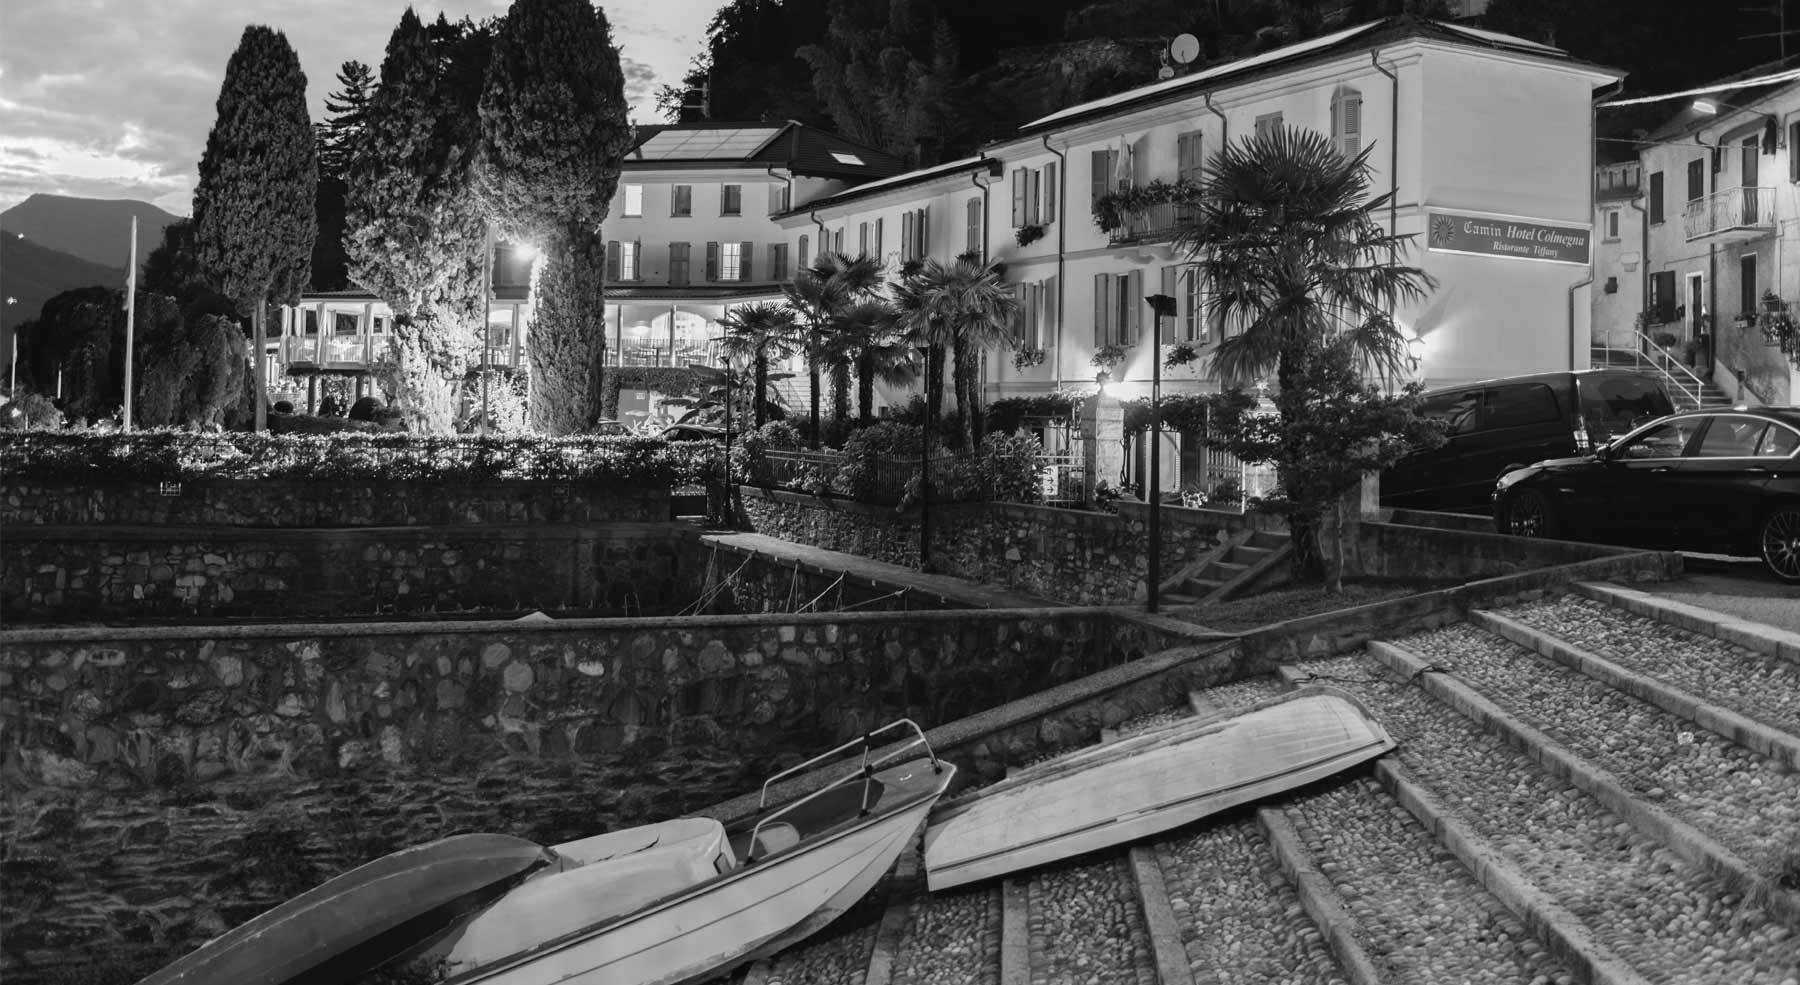 Period residence history lake maggiore holidays camin hotel